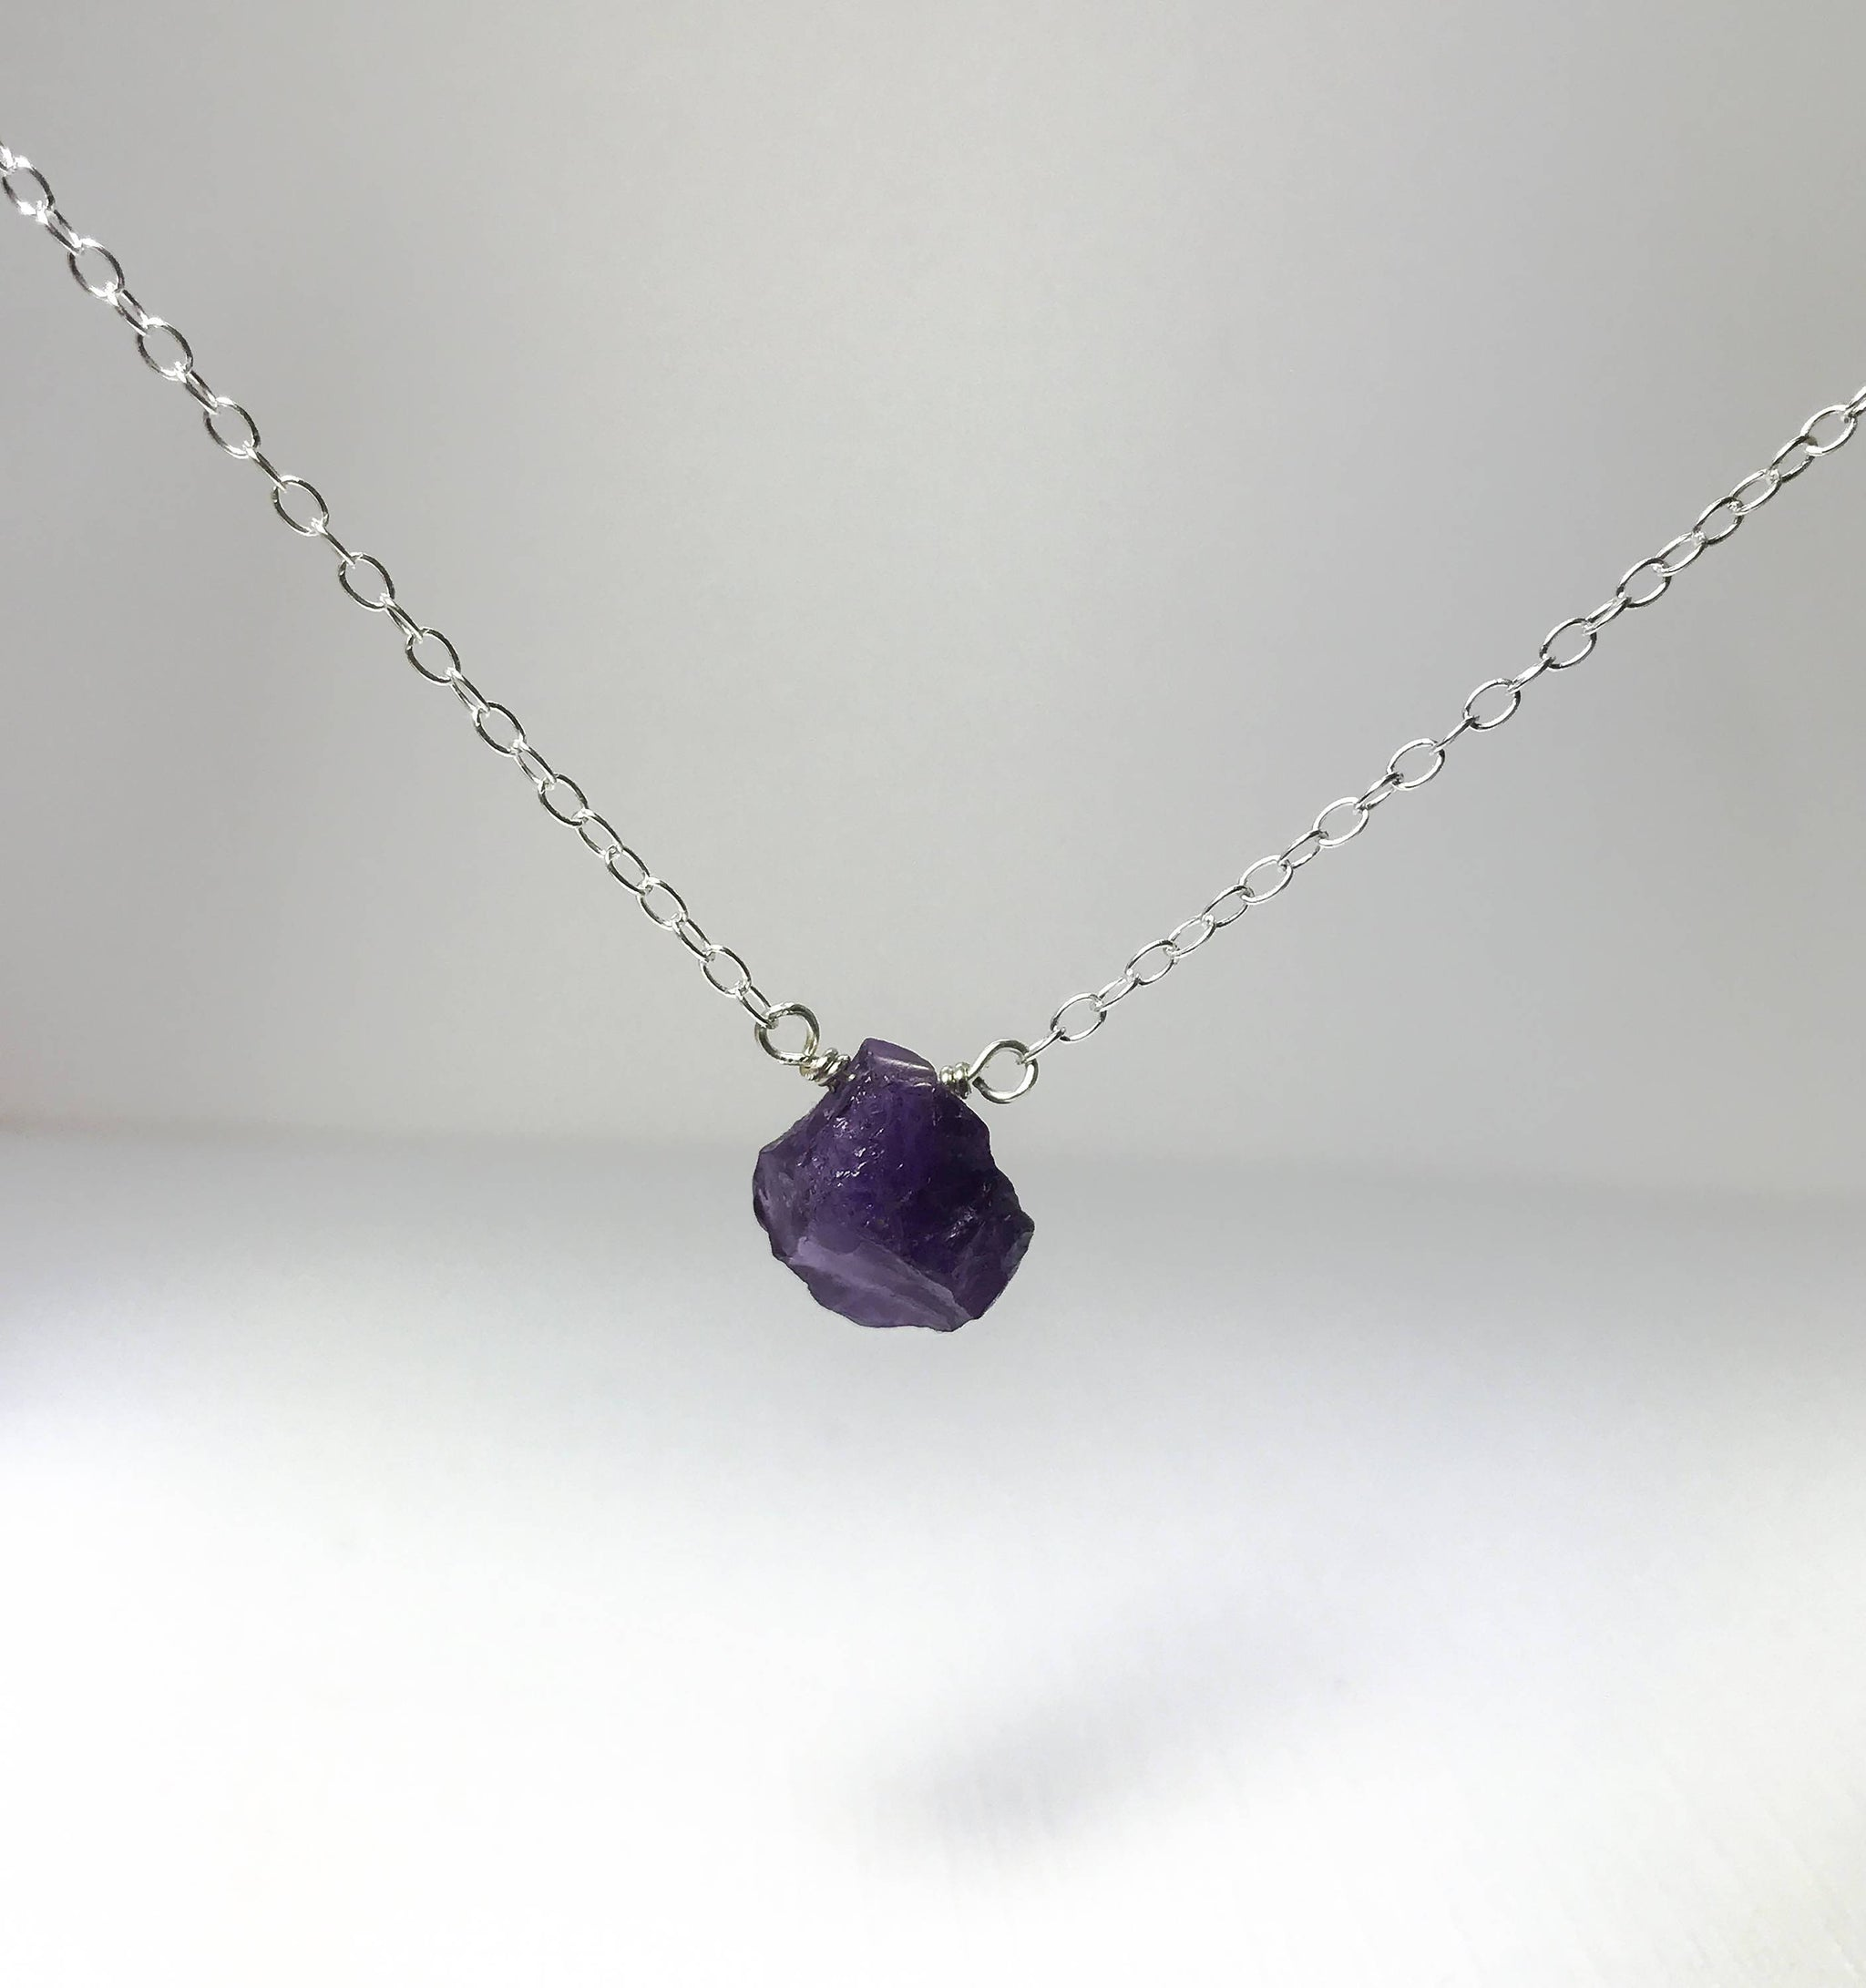 mint over overstock product adjustable fluorite stone free necklace watches shipping orders on gold raw with overlay inch jewelry natural jules pendant